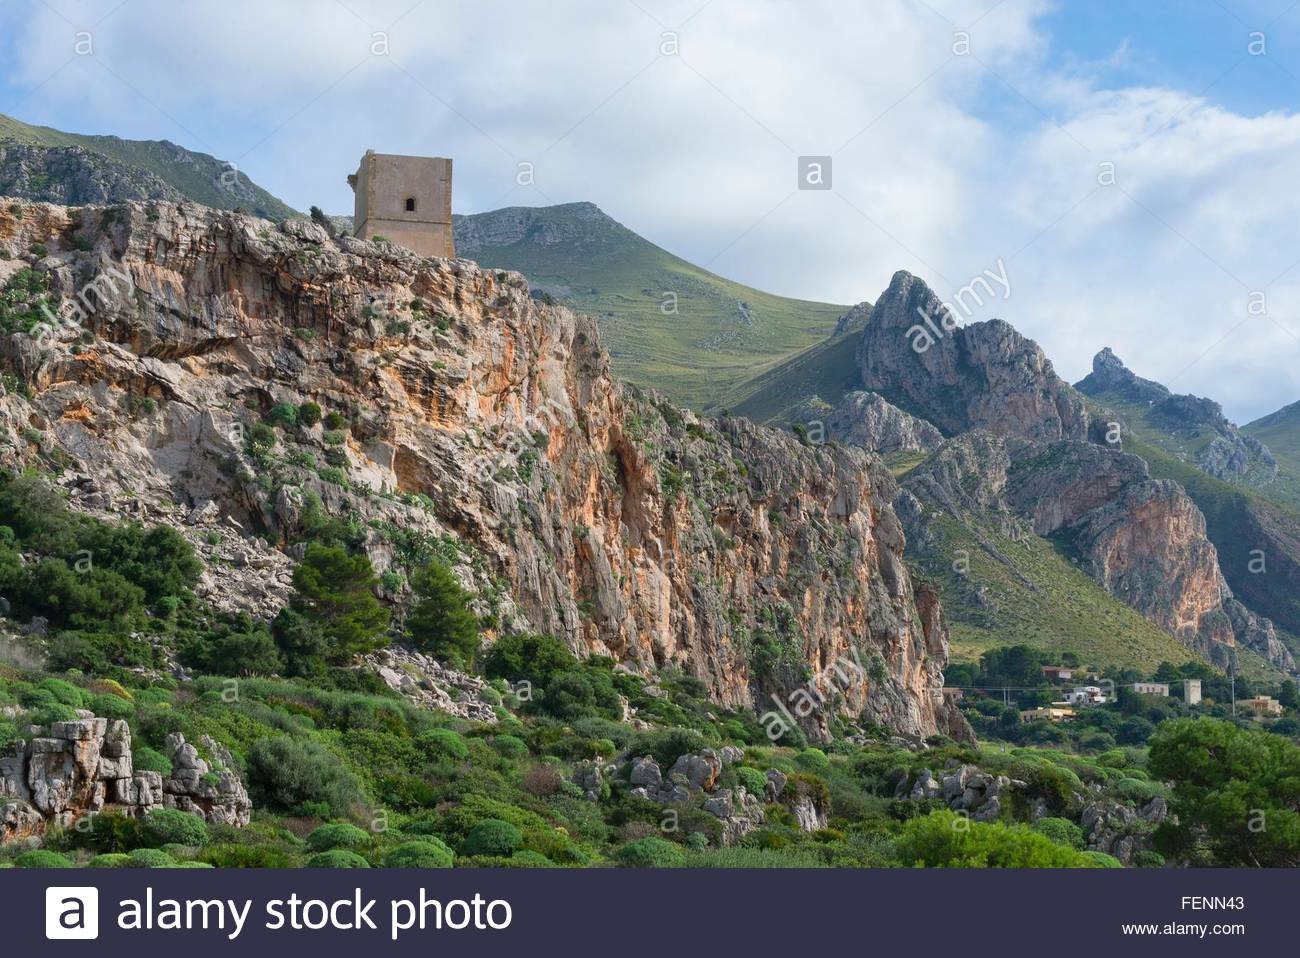 Elevated view of mountain tower, Macari, San Vito Lo Capo, Sicily, Italy - Stock Image